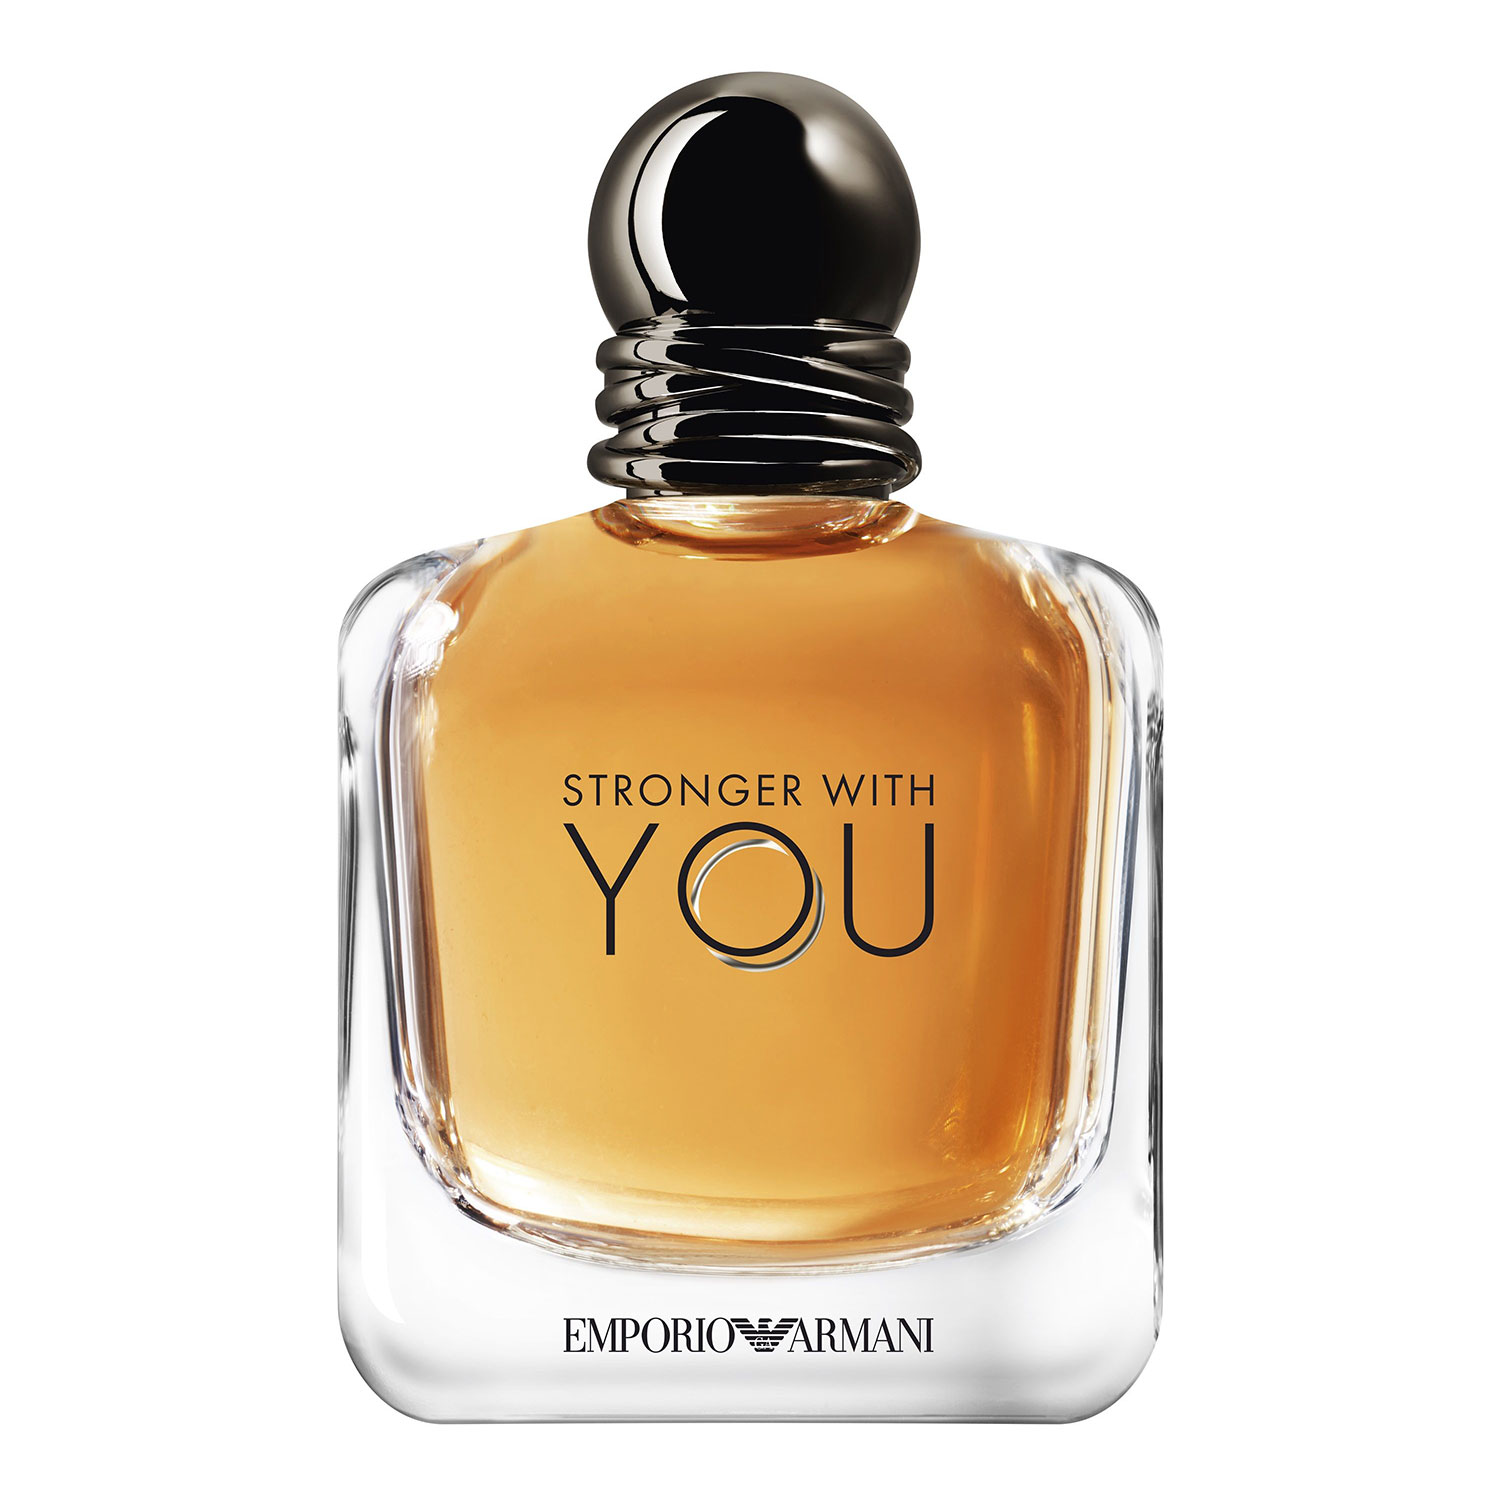 Emporio Armani - Stronger With You Eau de Toilette